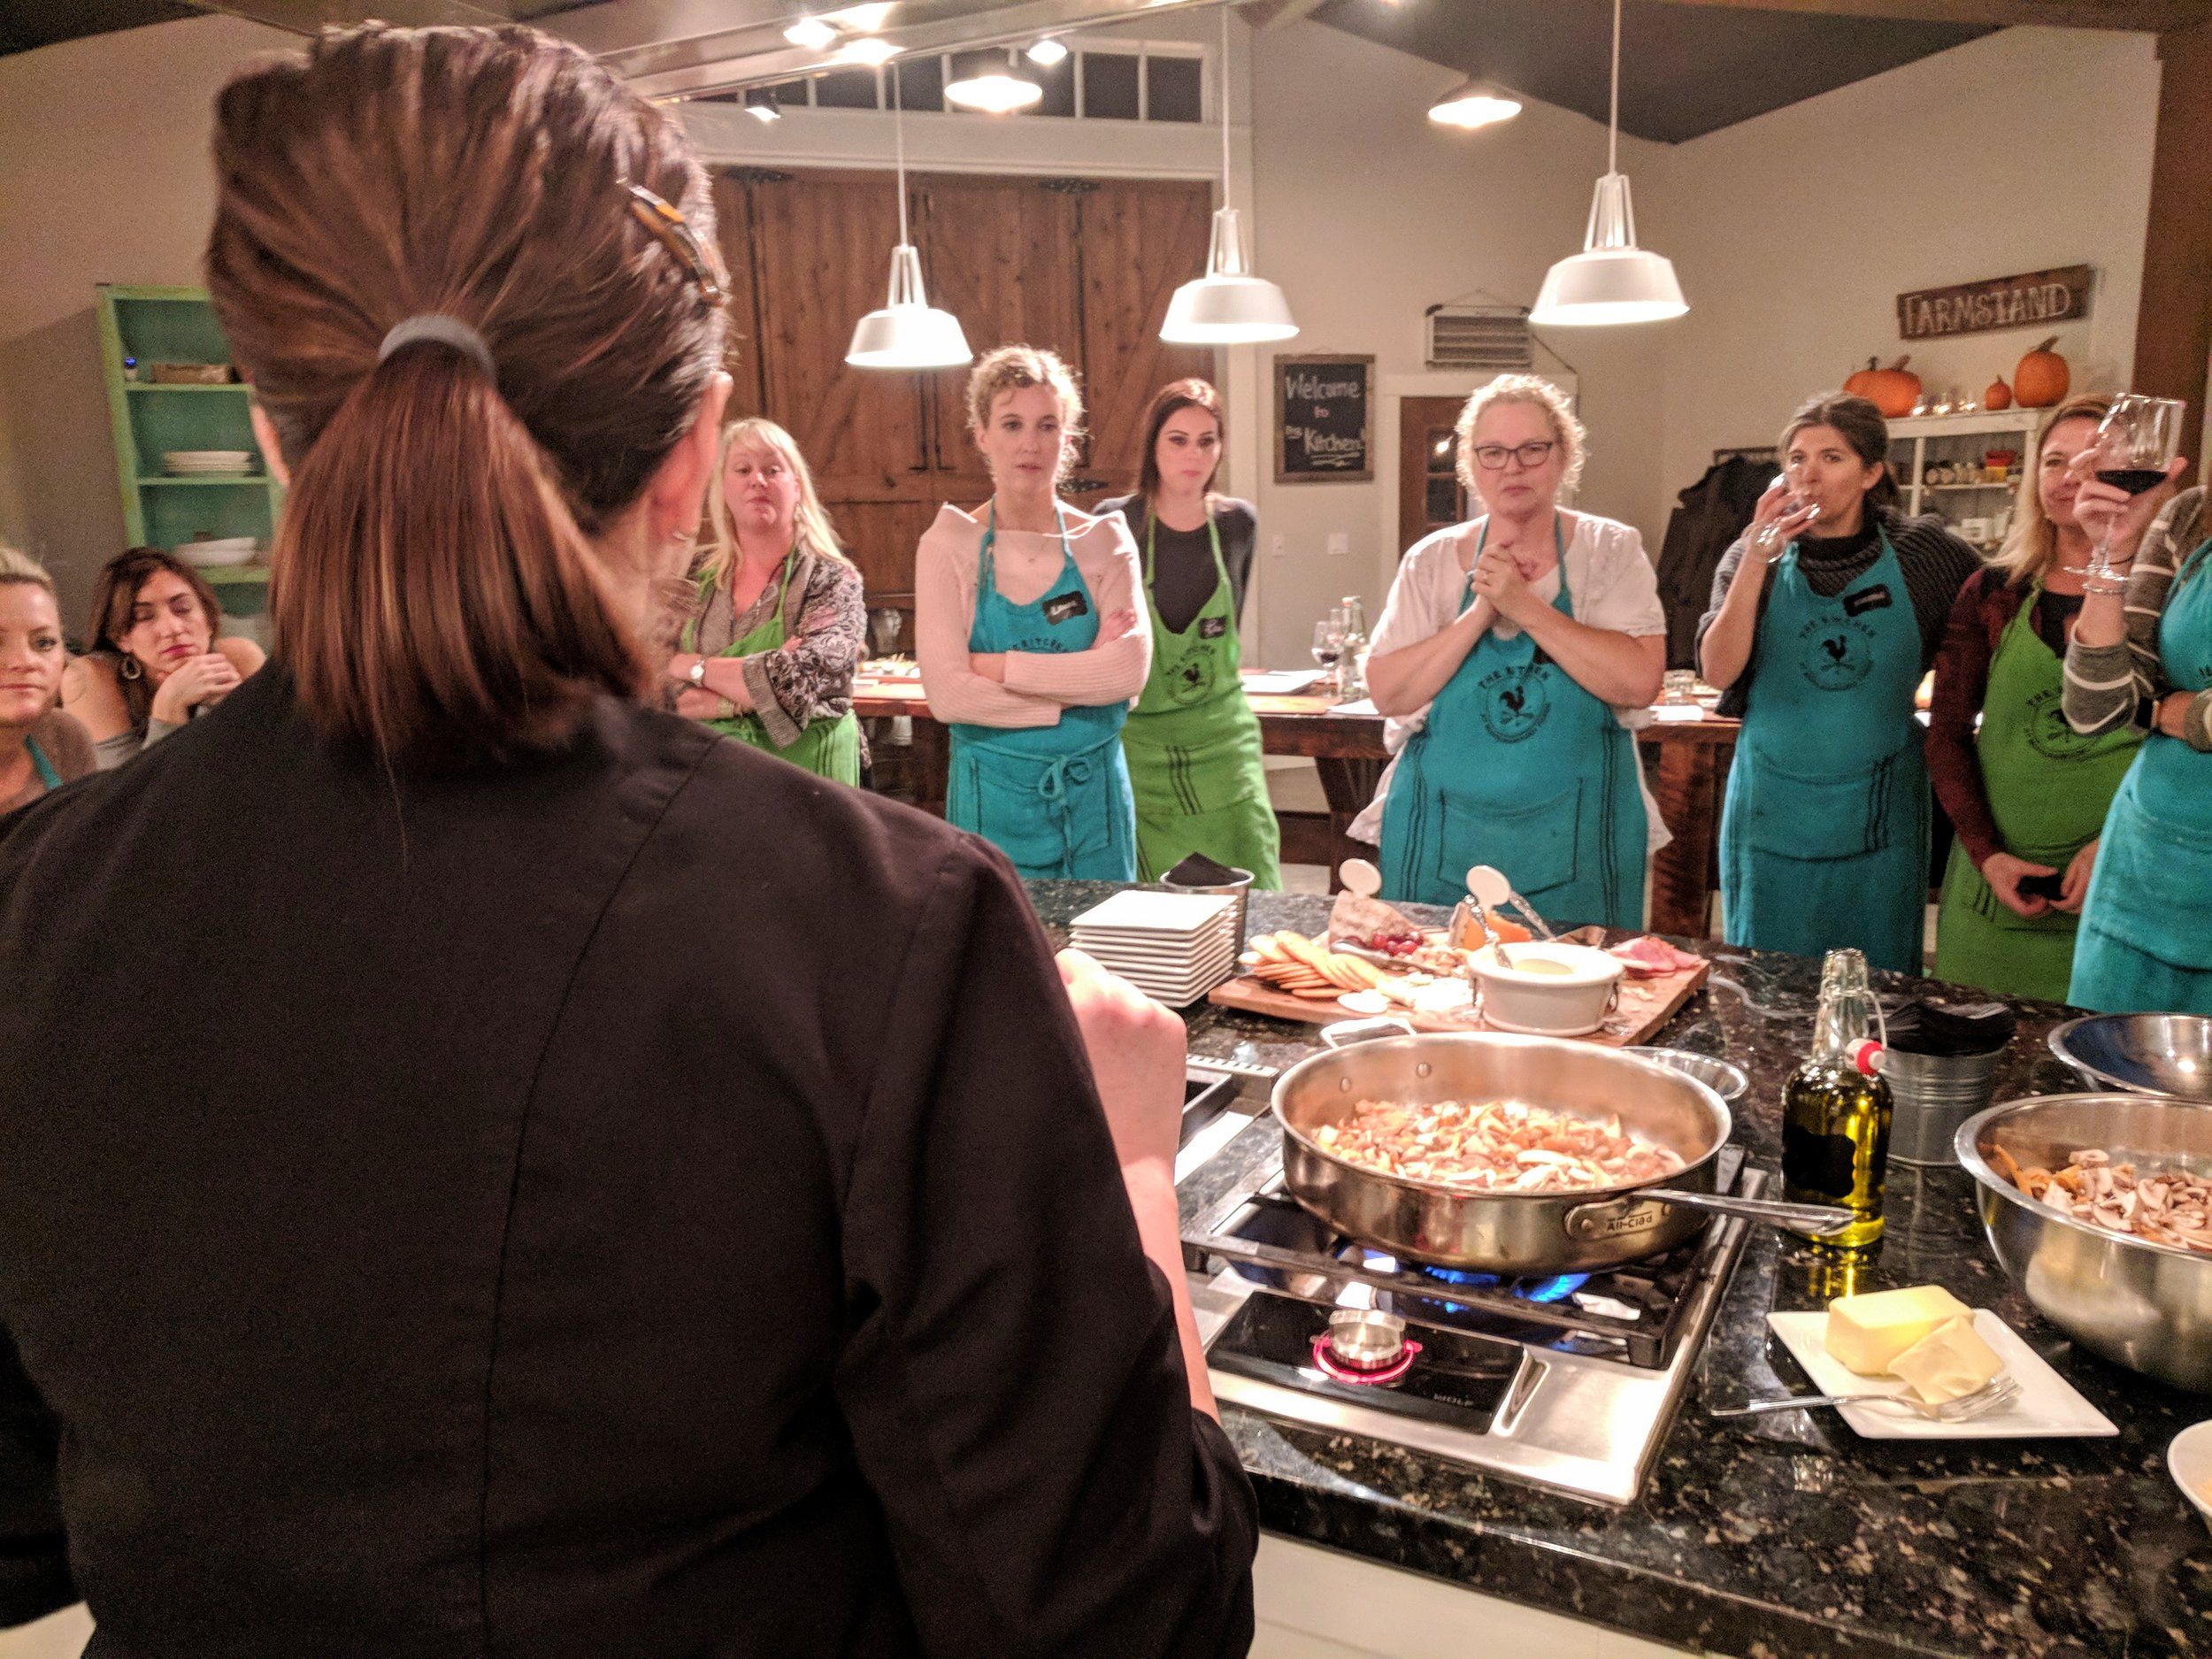 andrea-bowers-teaching-about-pastry.jpg